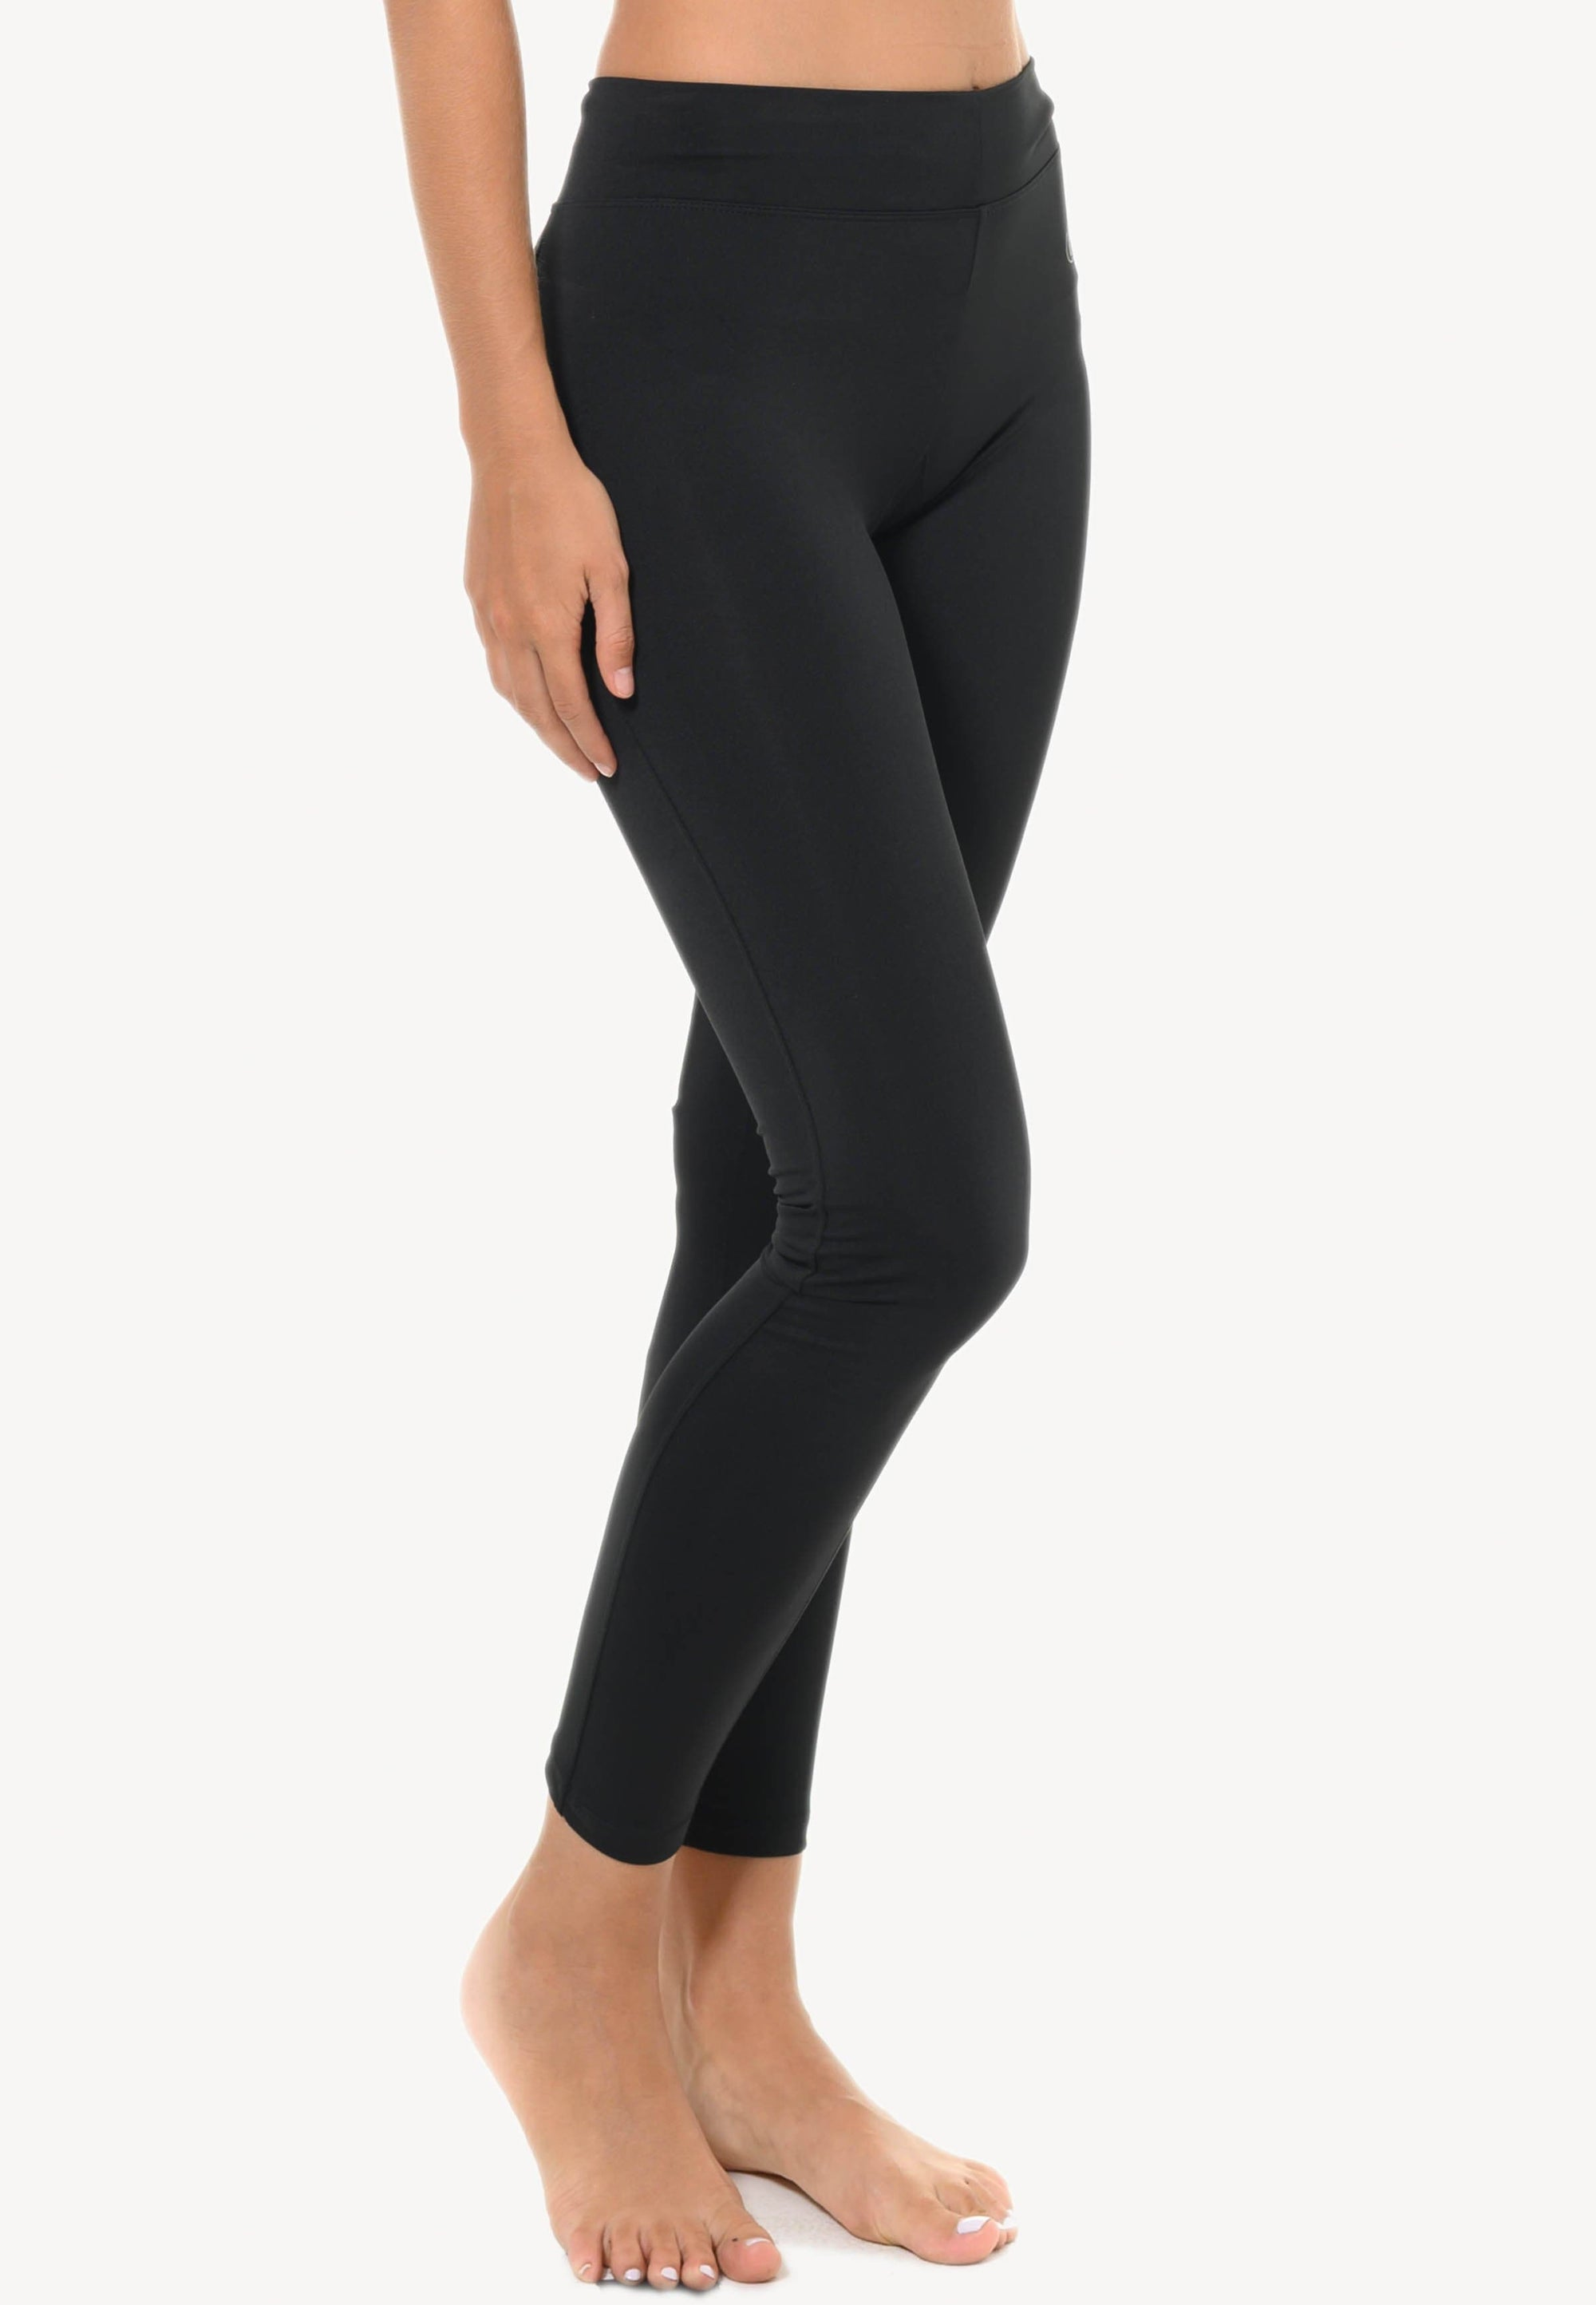 FUNFIT Basic Leggings in Black (with Back Trim) (S - 2XL)